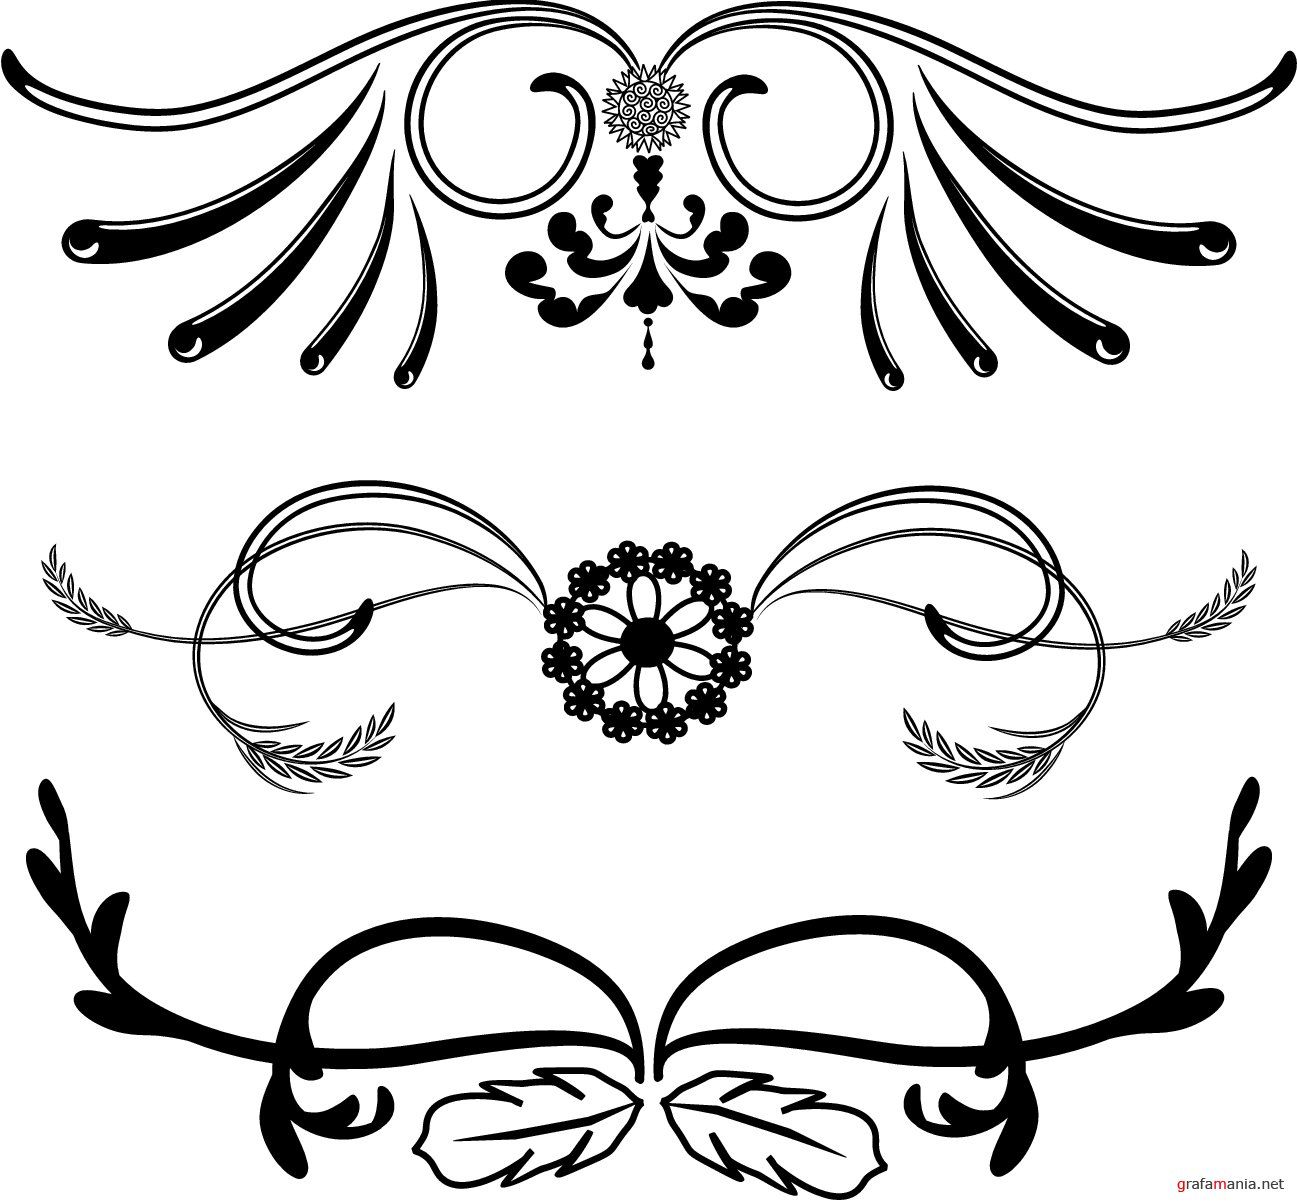 Western Themed Borders and Floral design | Western ...